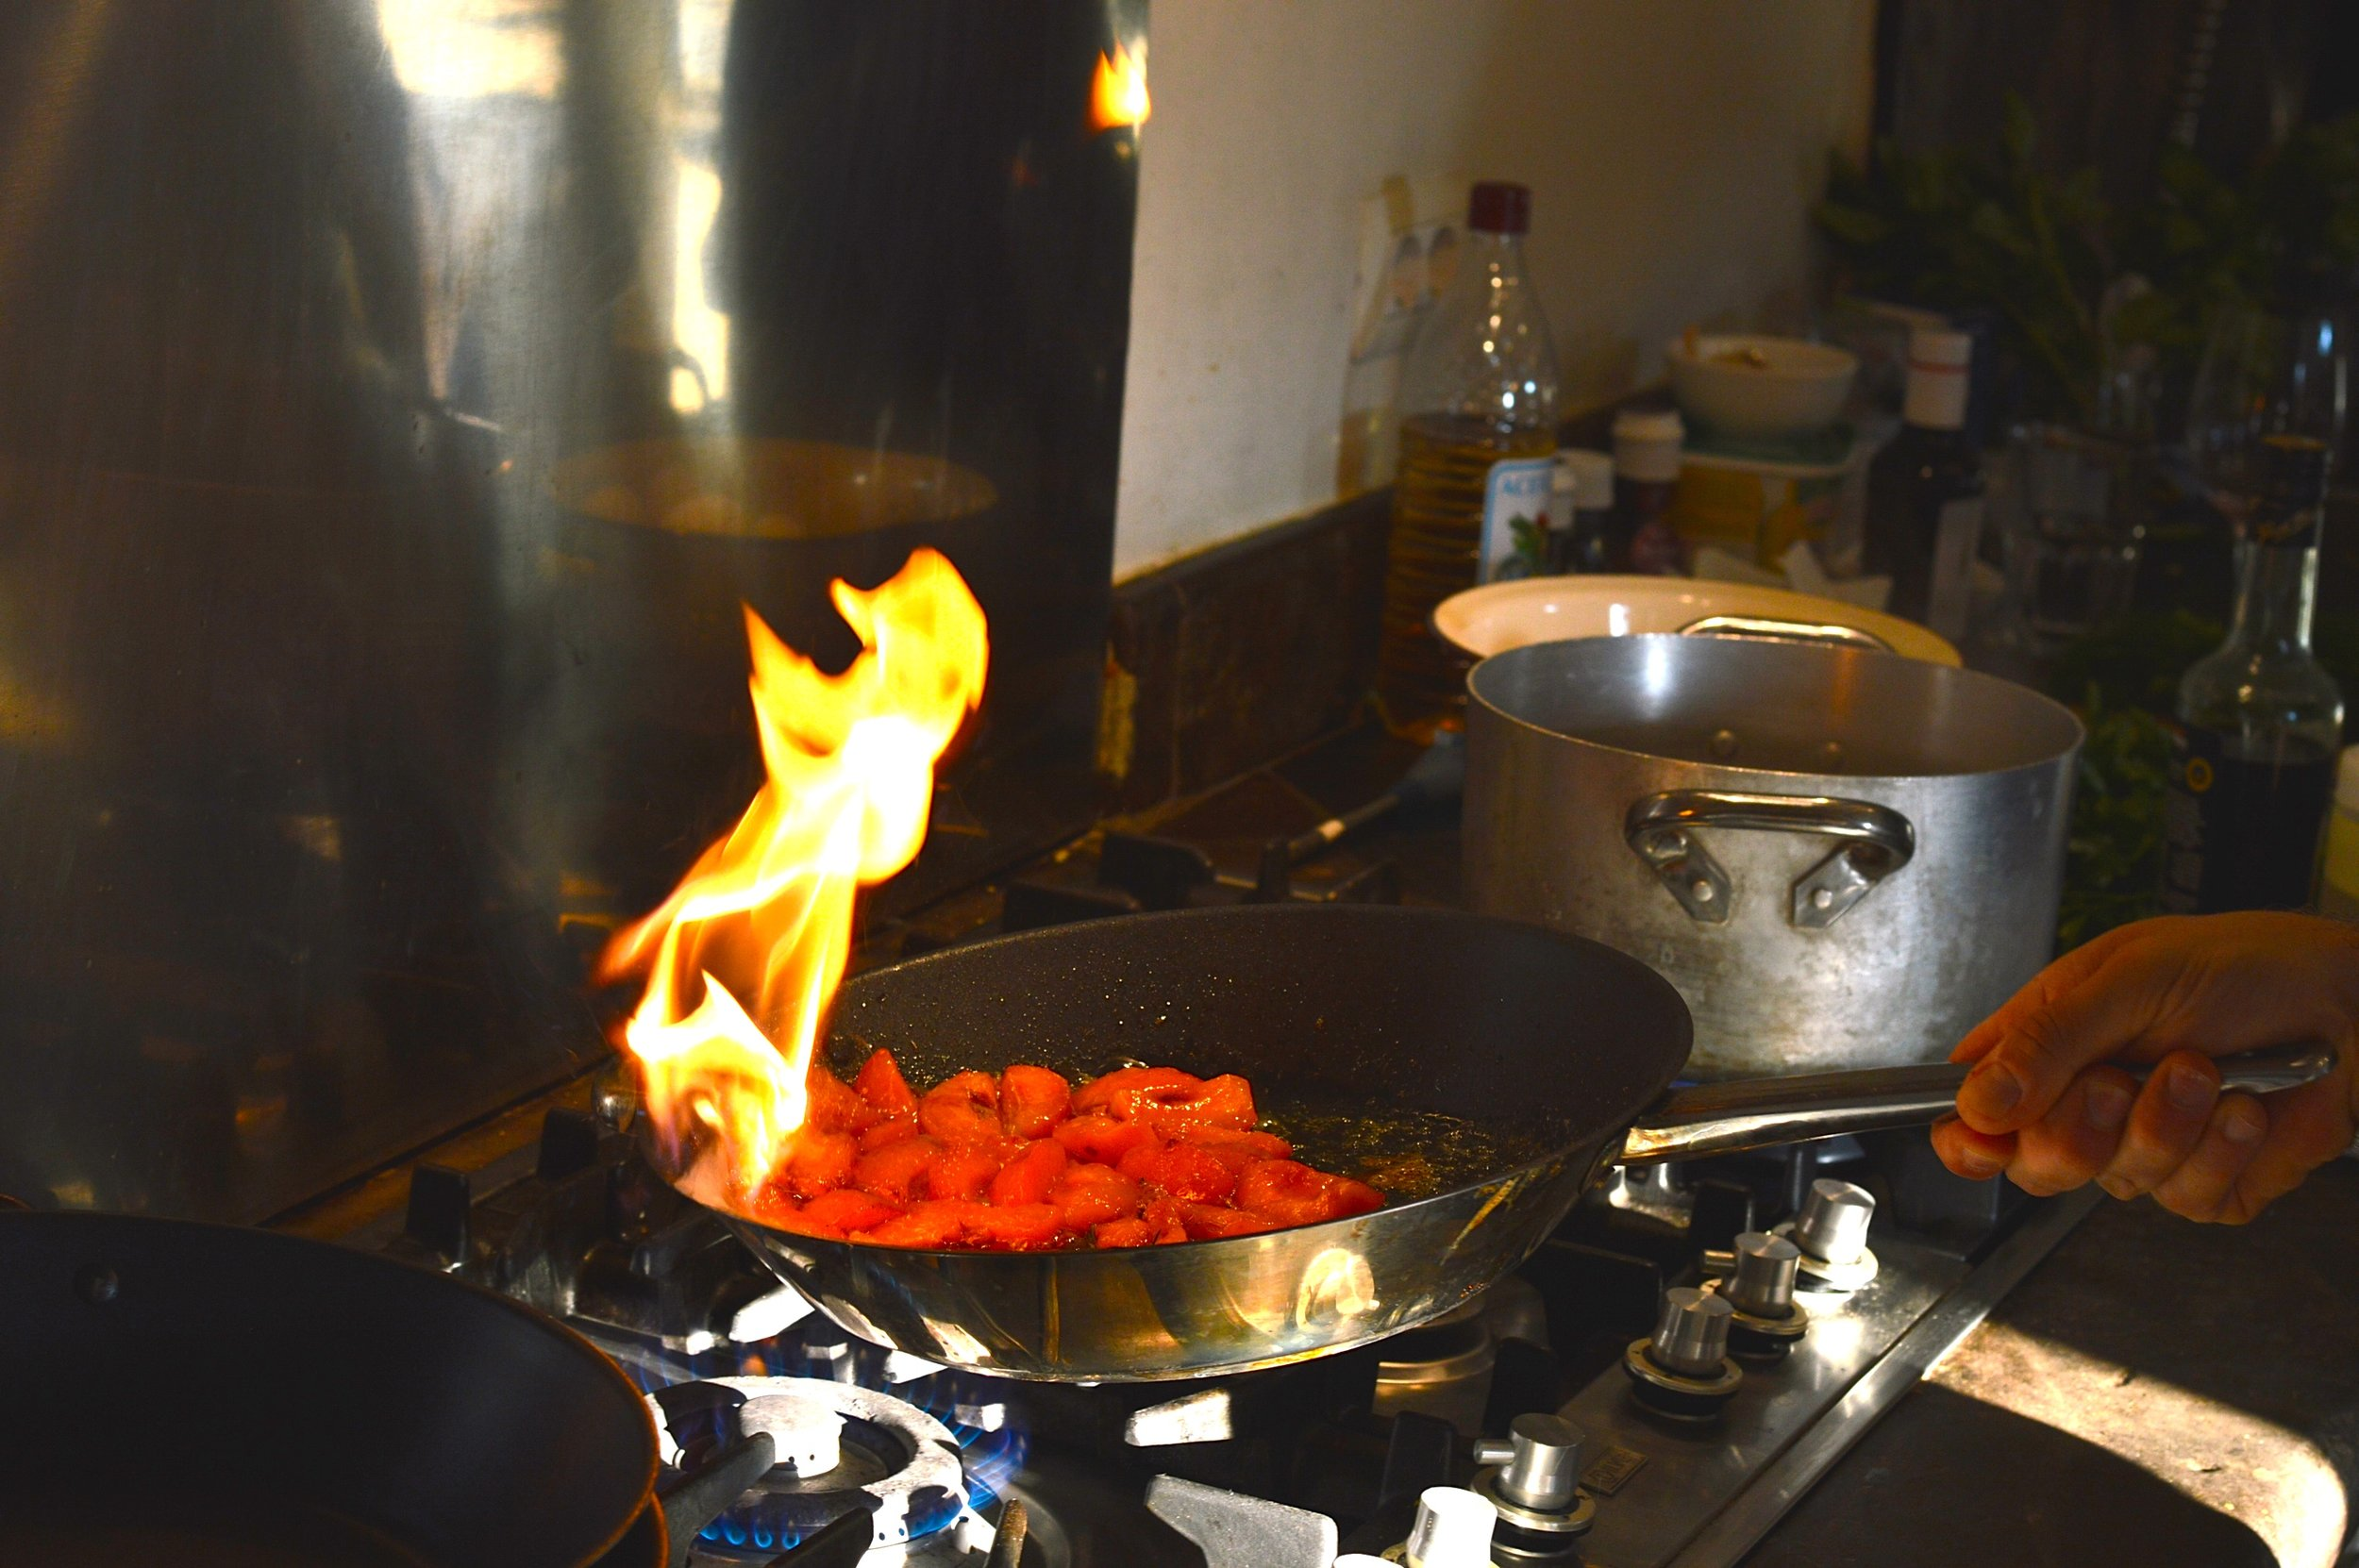 Peppers cooking in a pan